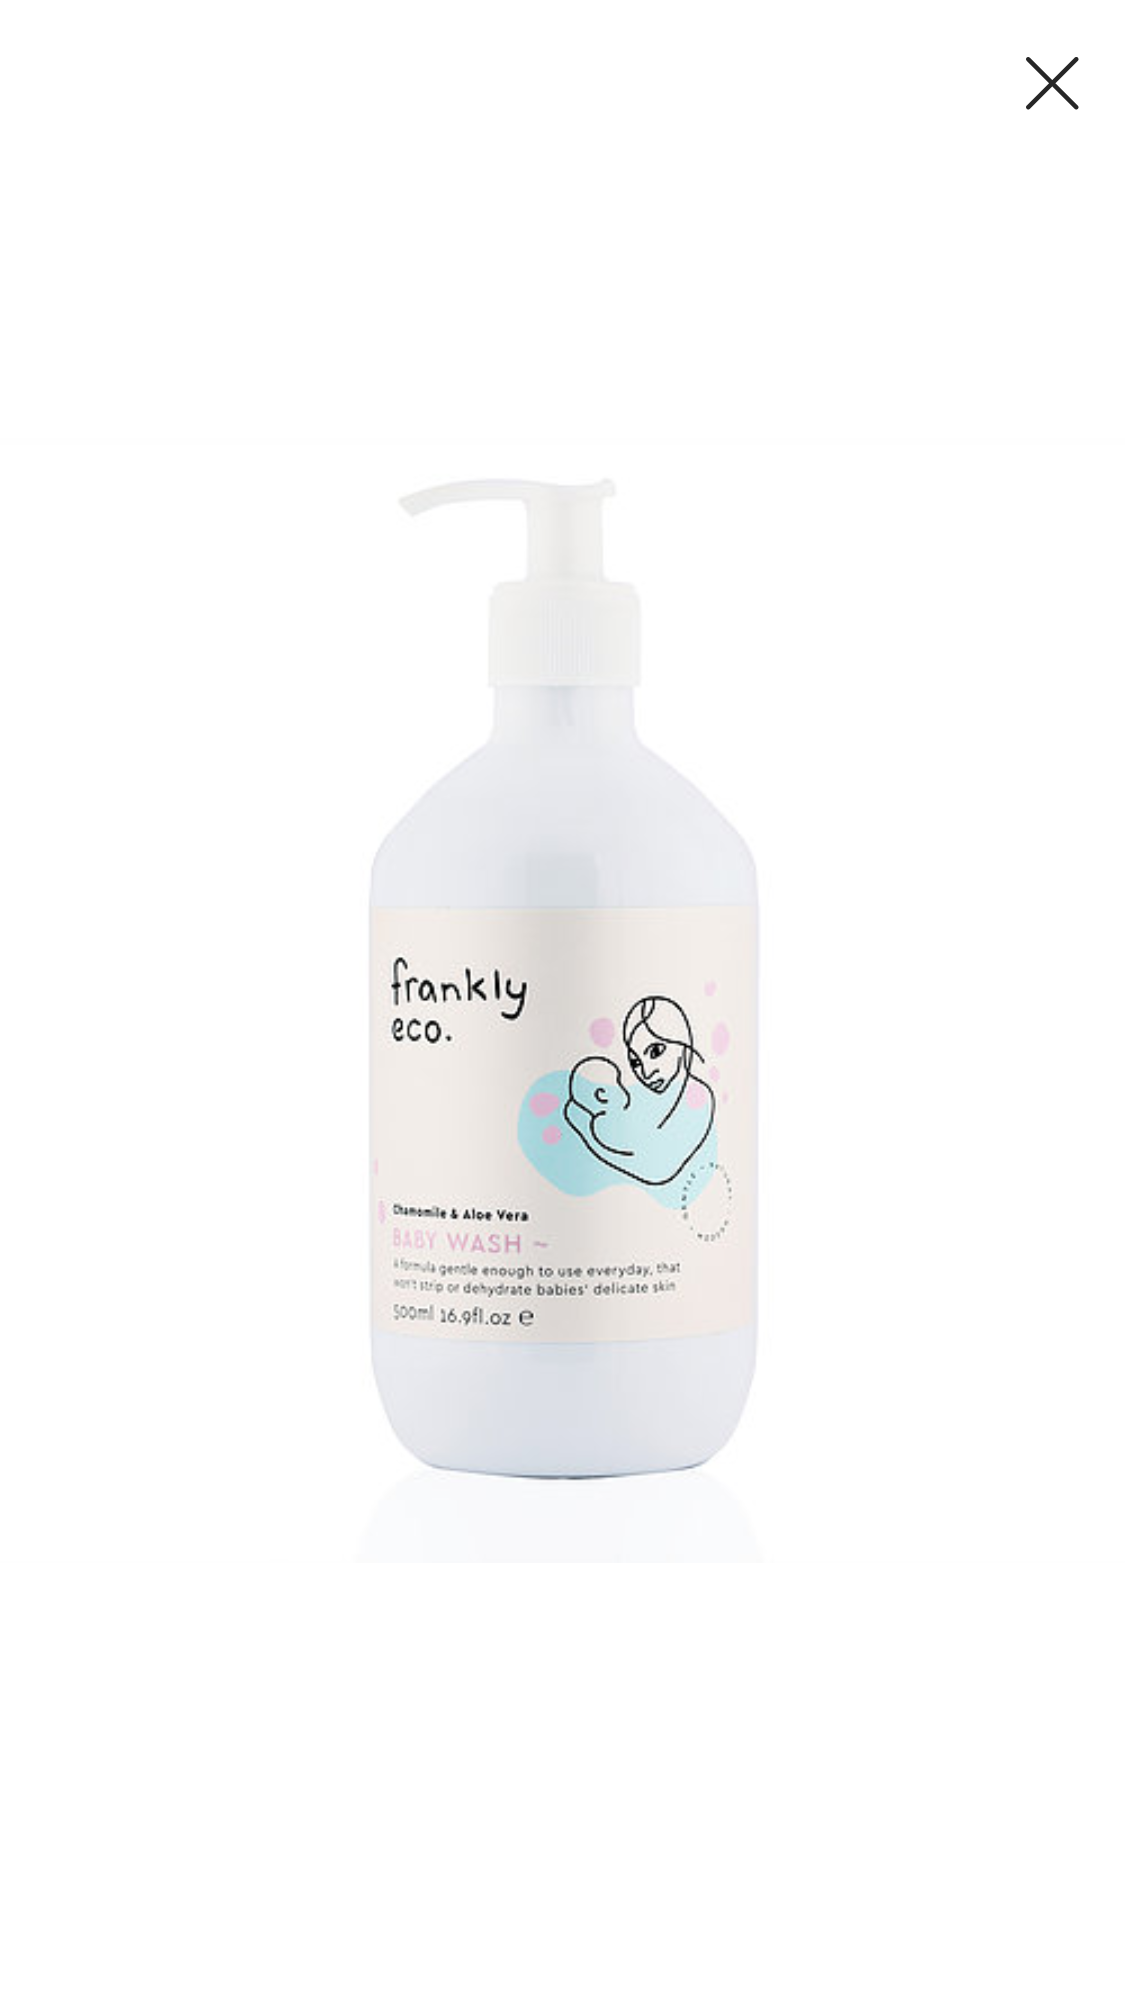 Frankly Eco Baby Wash 500mL $30 each